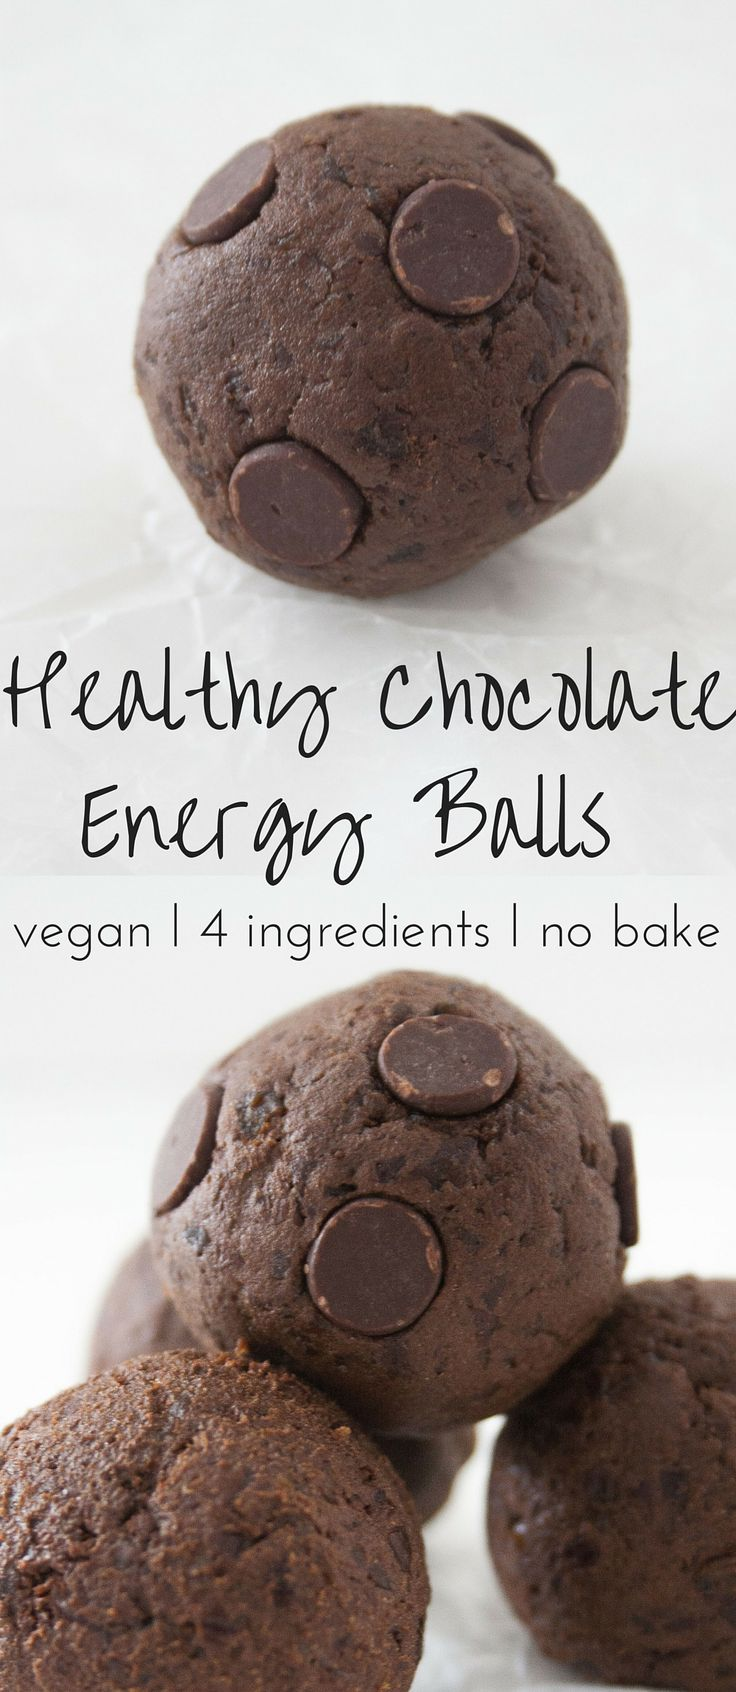 Healthy chocolate energy balls that are vegan, no bake, and an easy recipe with just 4 ingredients. The best chocolate energy balls! Kick Start The New Year with Dollop of Yum. Low calorie and high protein